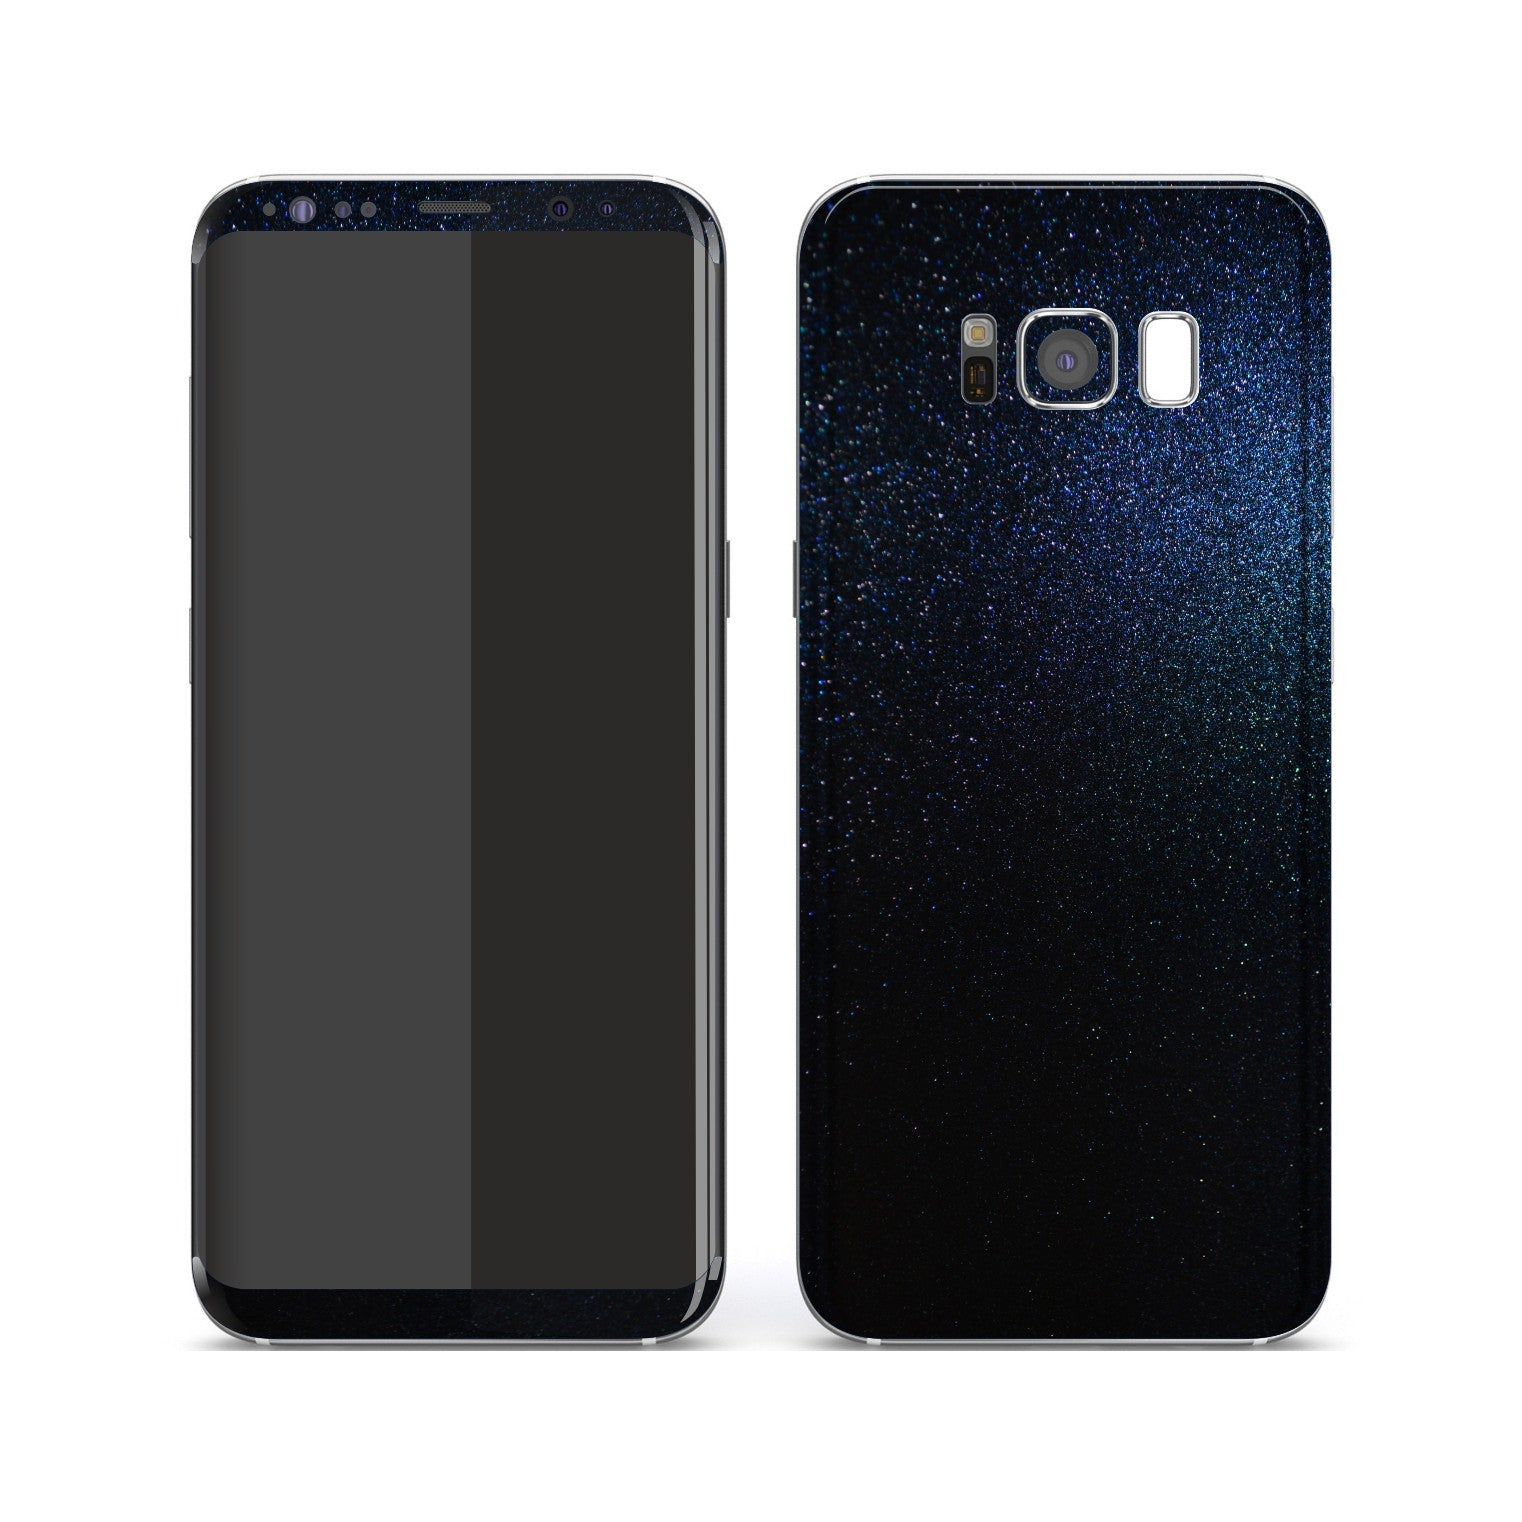 Samsung Galaxy S8+ Glossy Midnight Blue Metallic Skin, Decal, Wrap, Protector, Cover by EasySkinz | EasySkinz.com